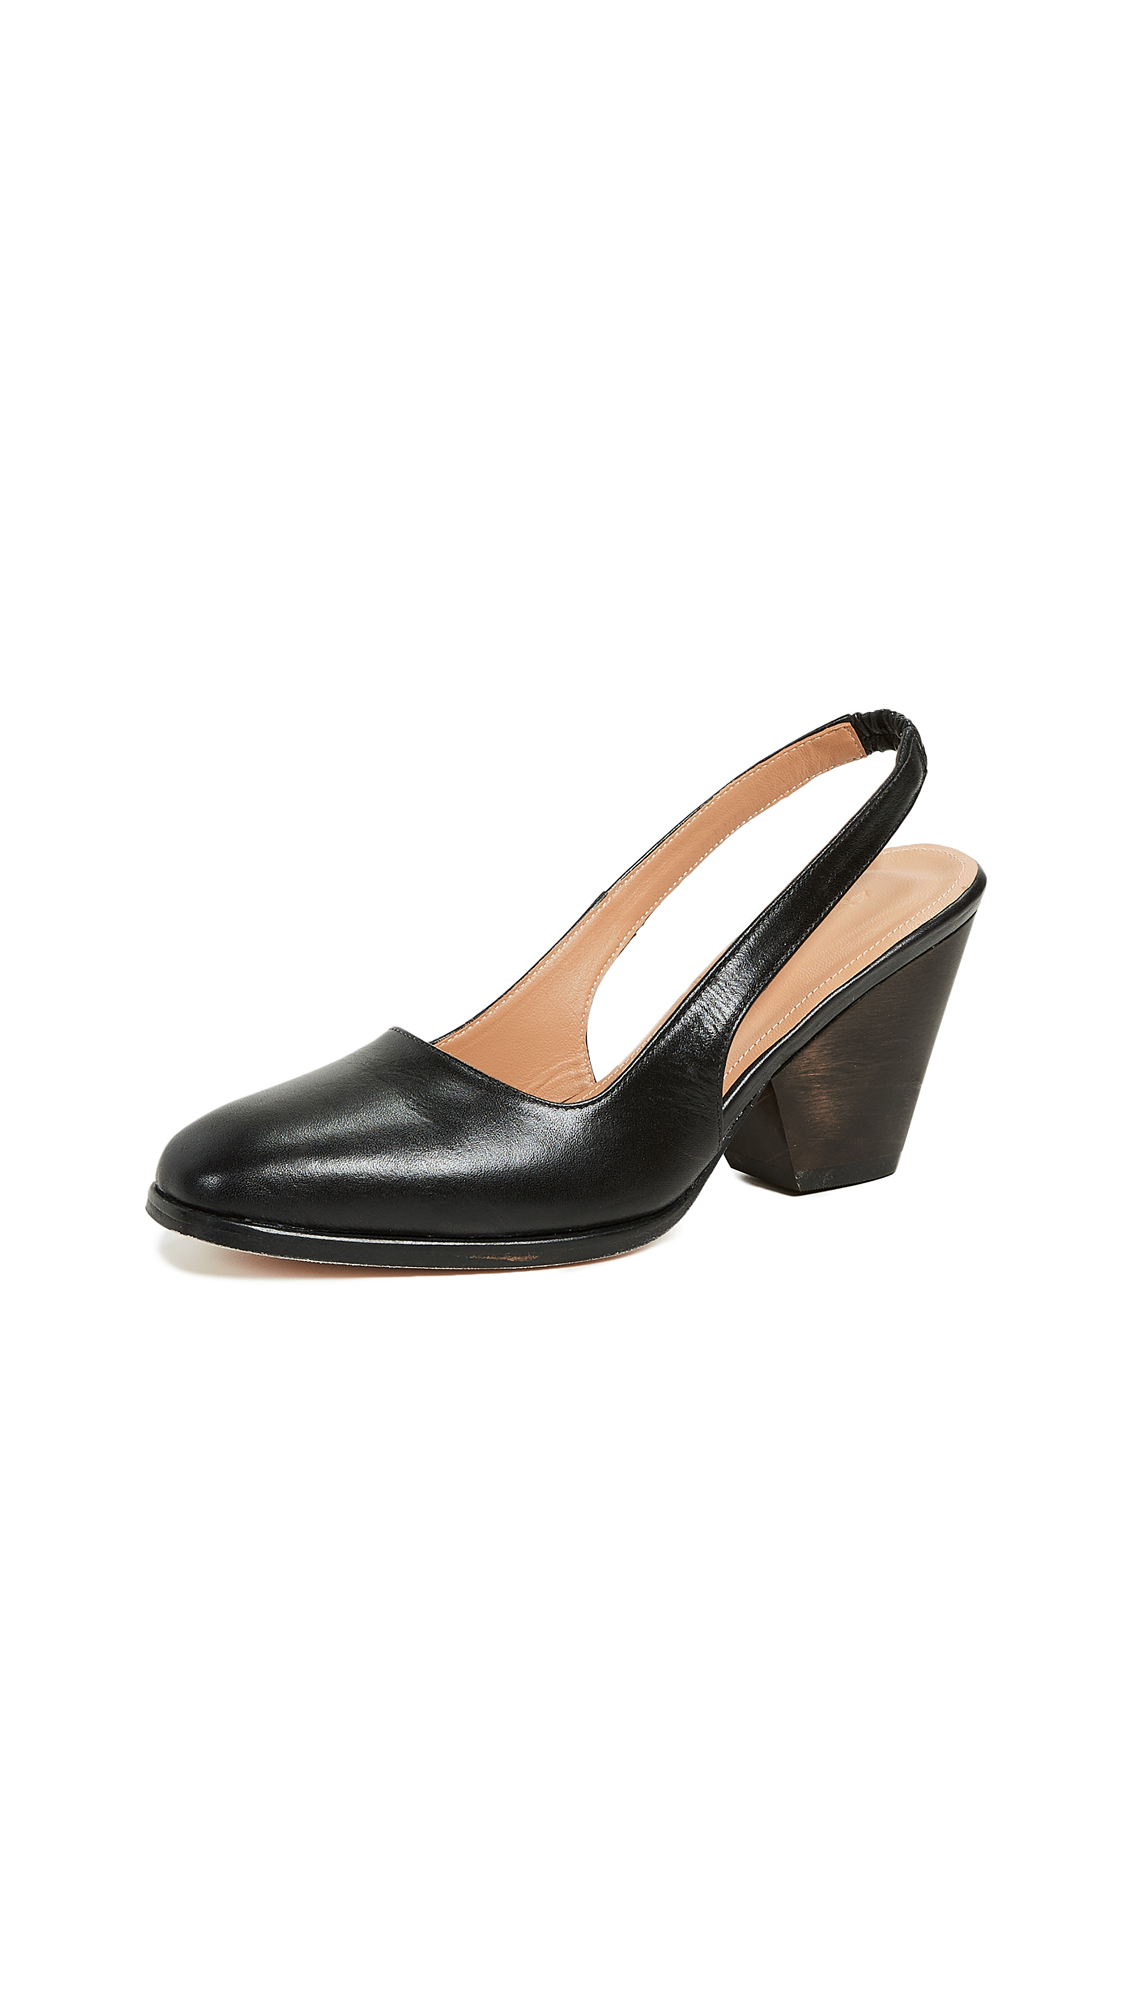 THE PALATINES Imago Slingback Pumps in Black